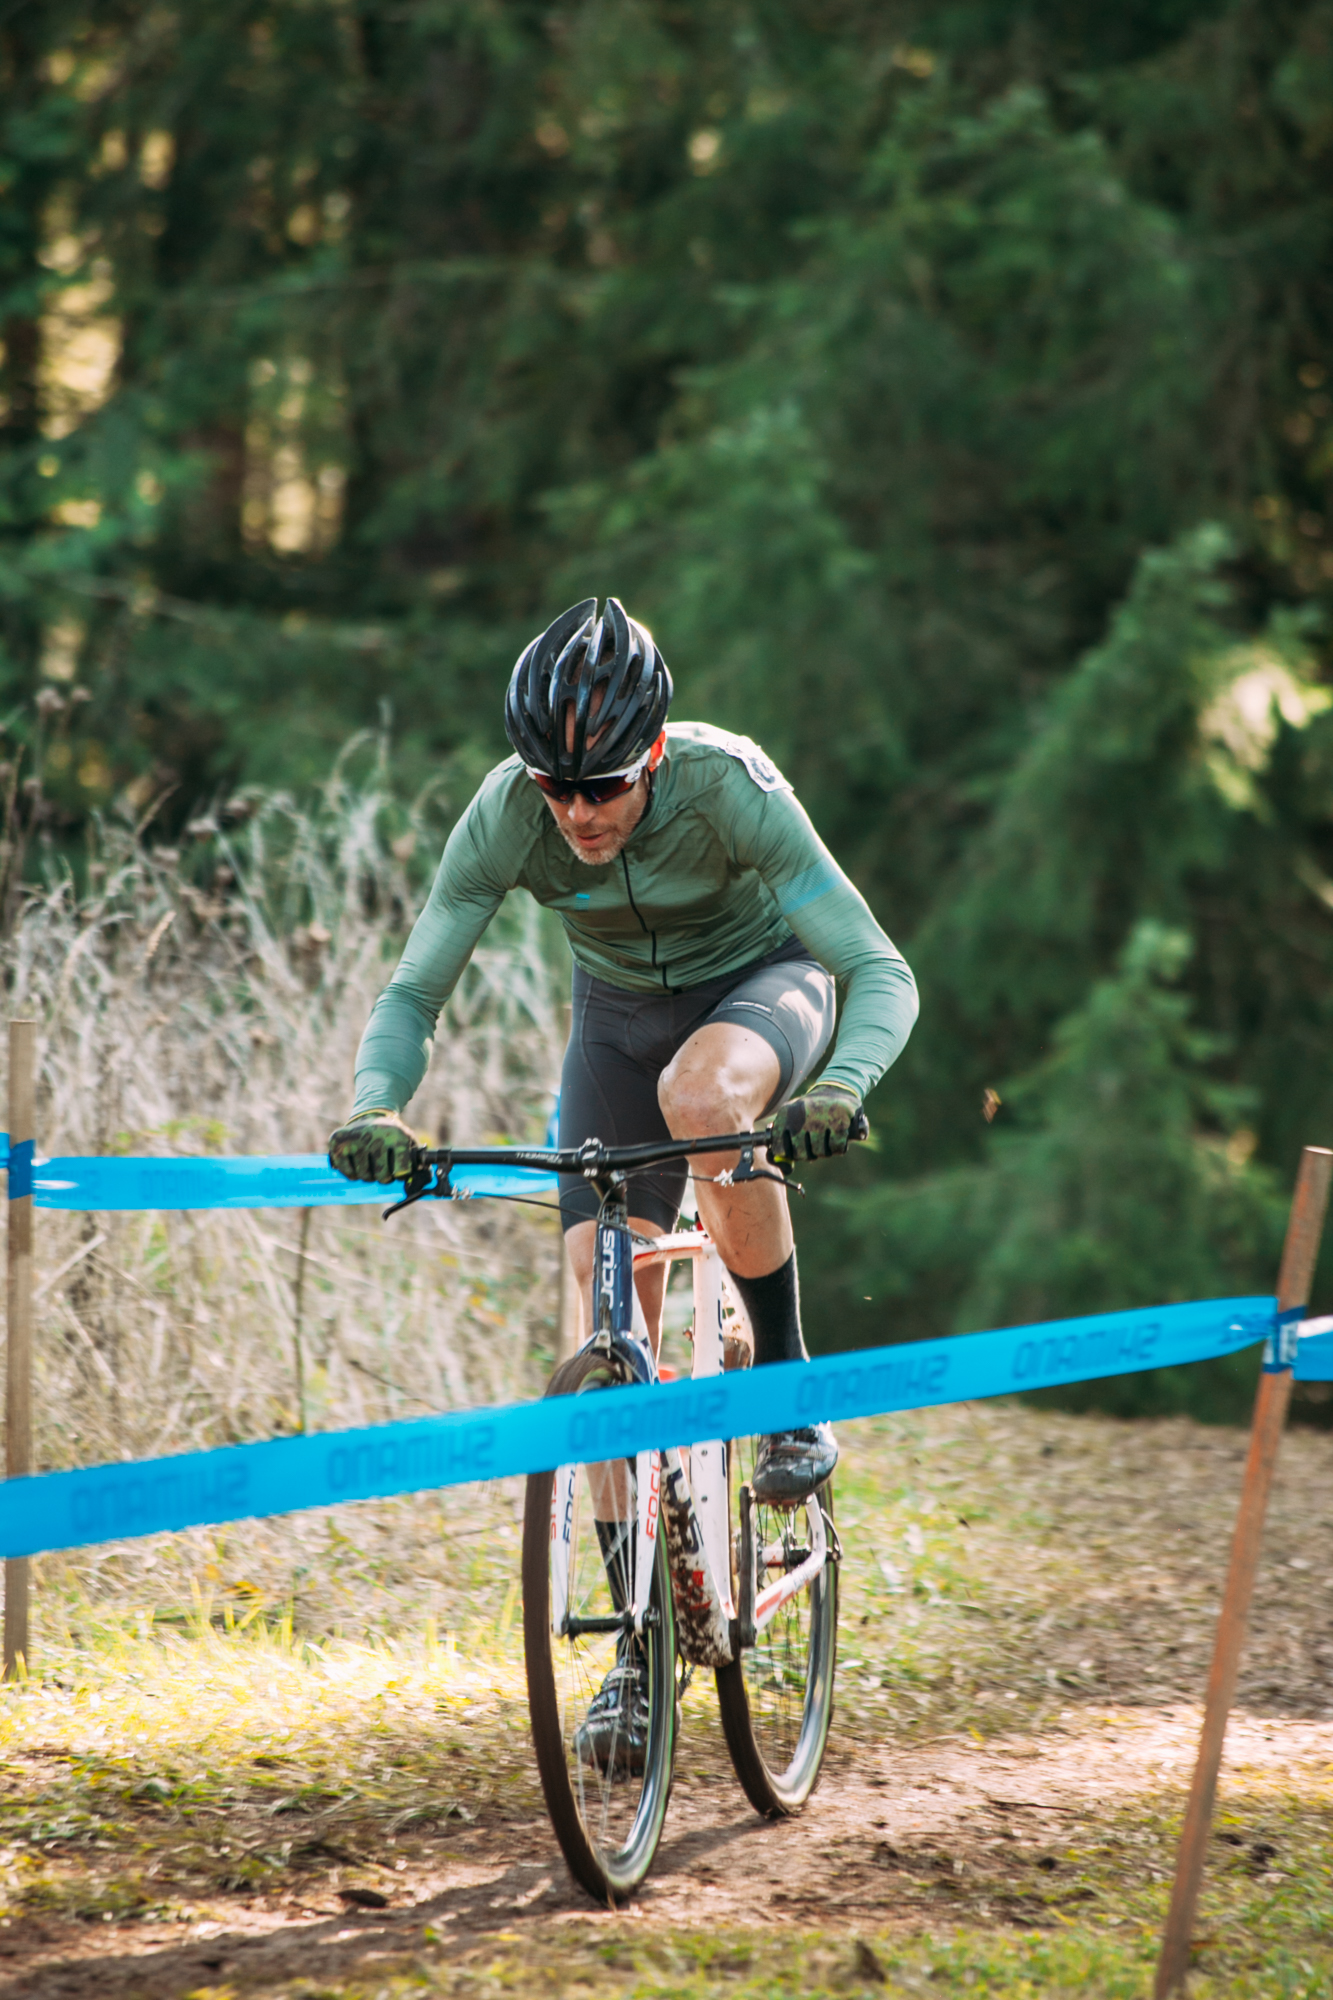 Cyclocross18_CCCX_RainierHS-151-mettlecycling.jpg